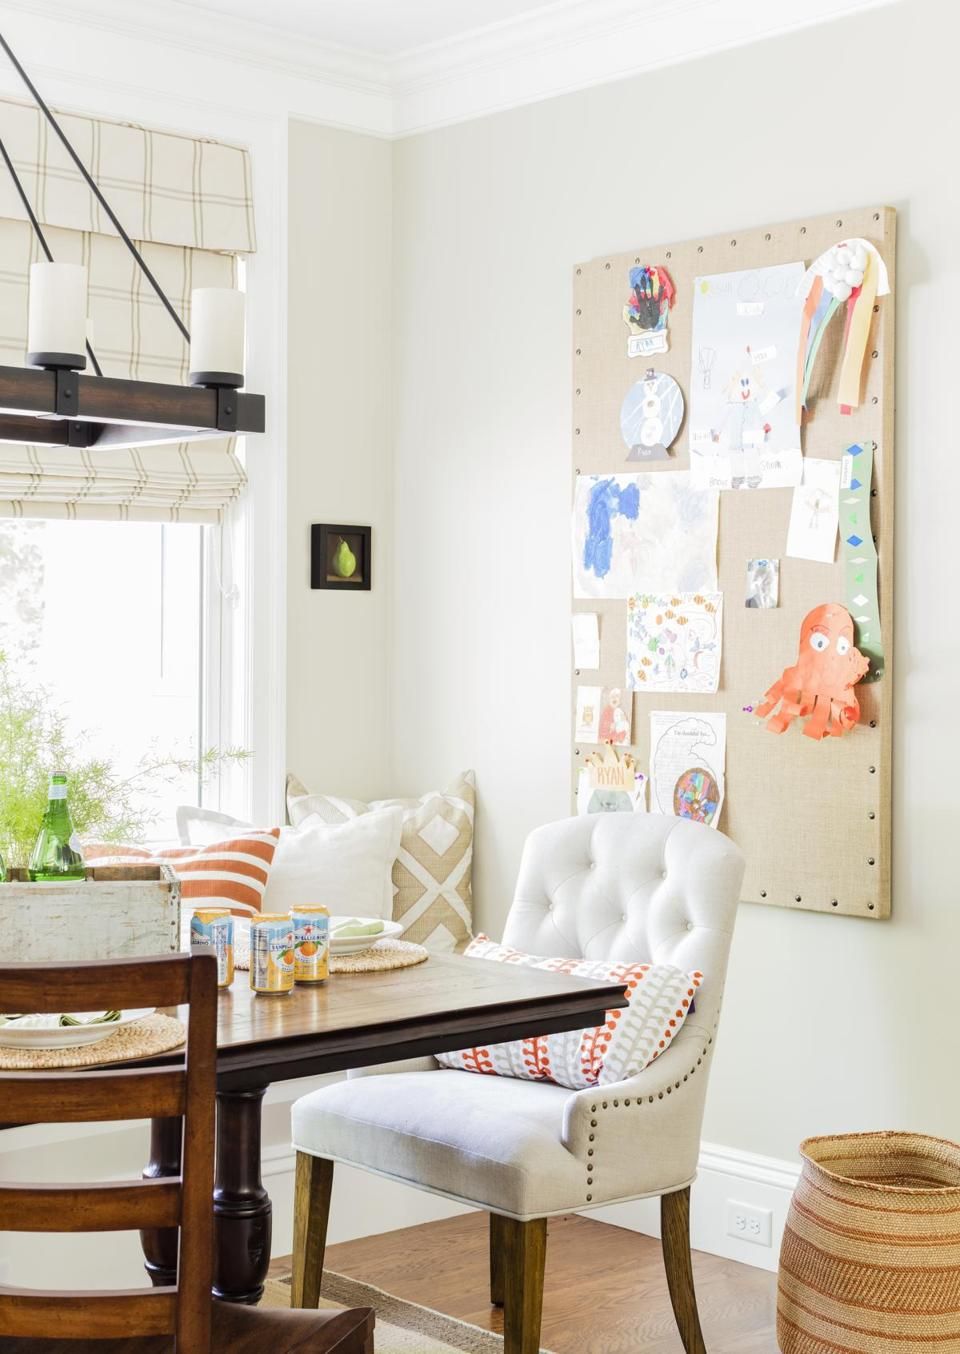 A burlap bulletin board displays kids' art.